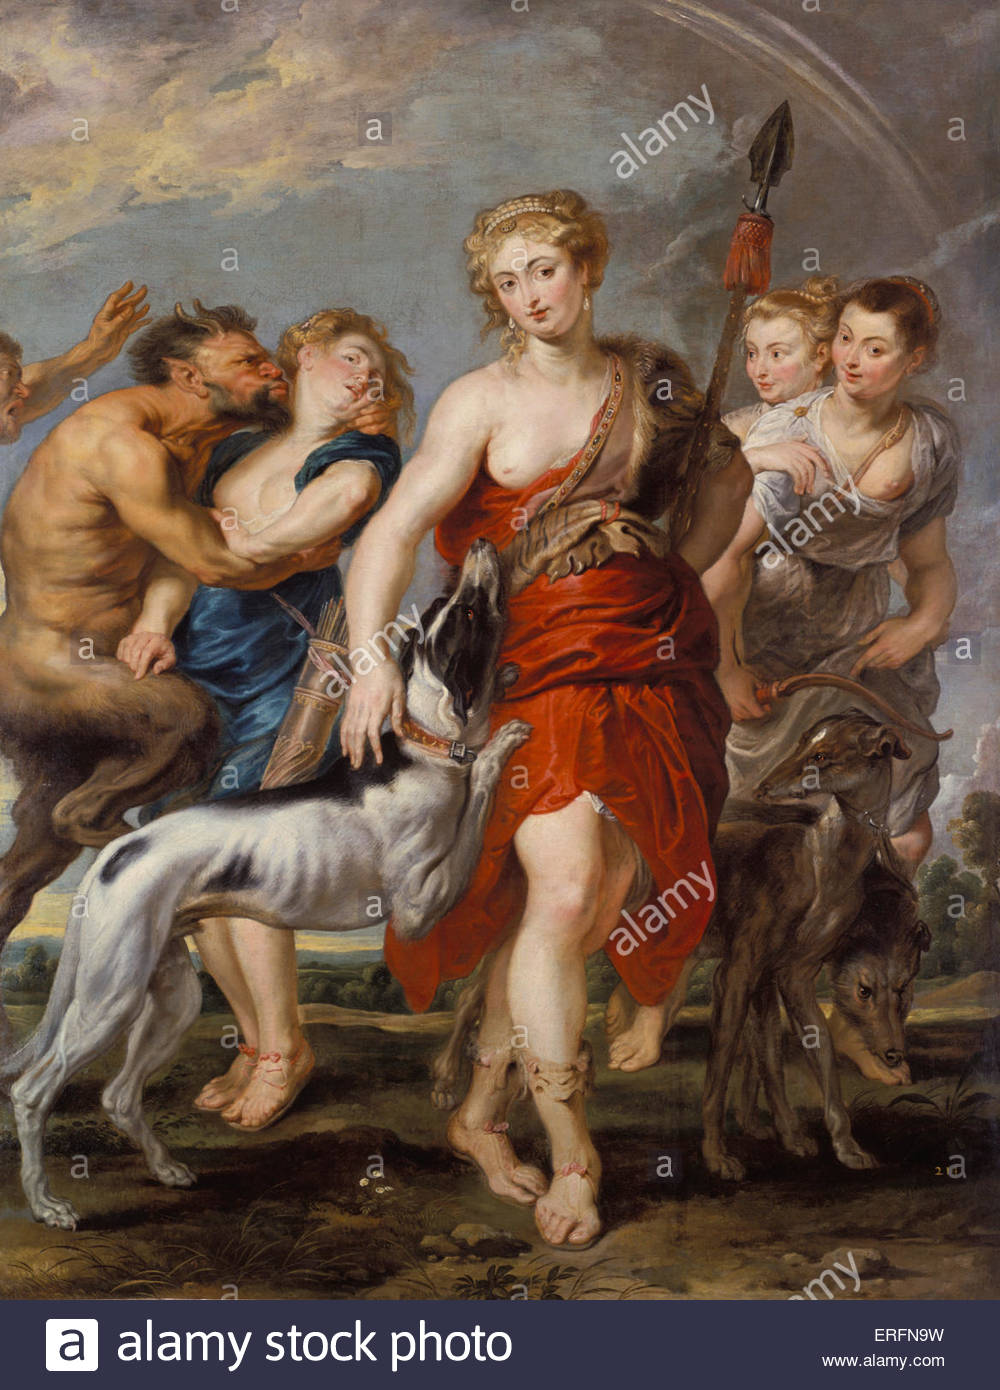 Diana and Her Nymphs on the Hunt by Peter Paul Rubens, c.1615 Painting. Flemish painter, 28 June 1577 - 30 May 1640. - Stock Image